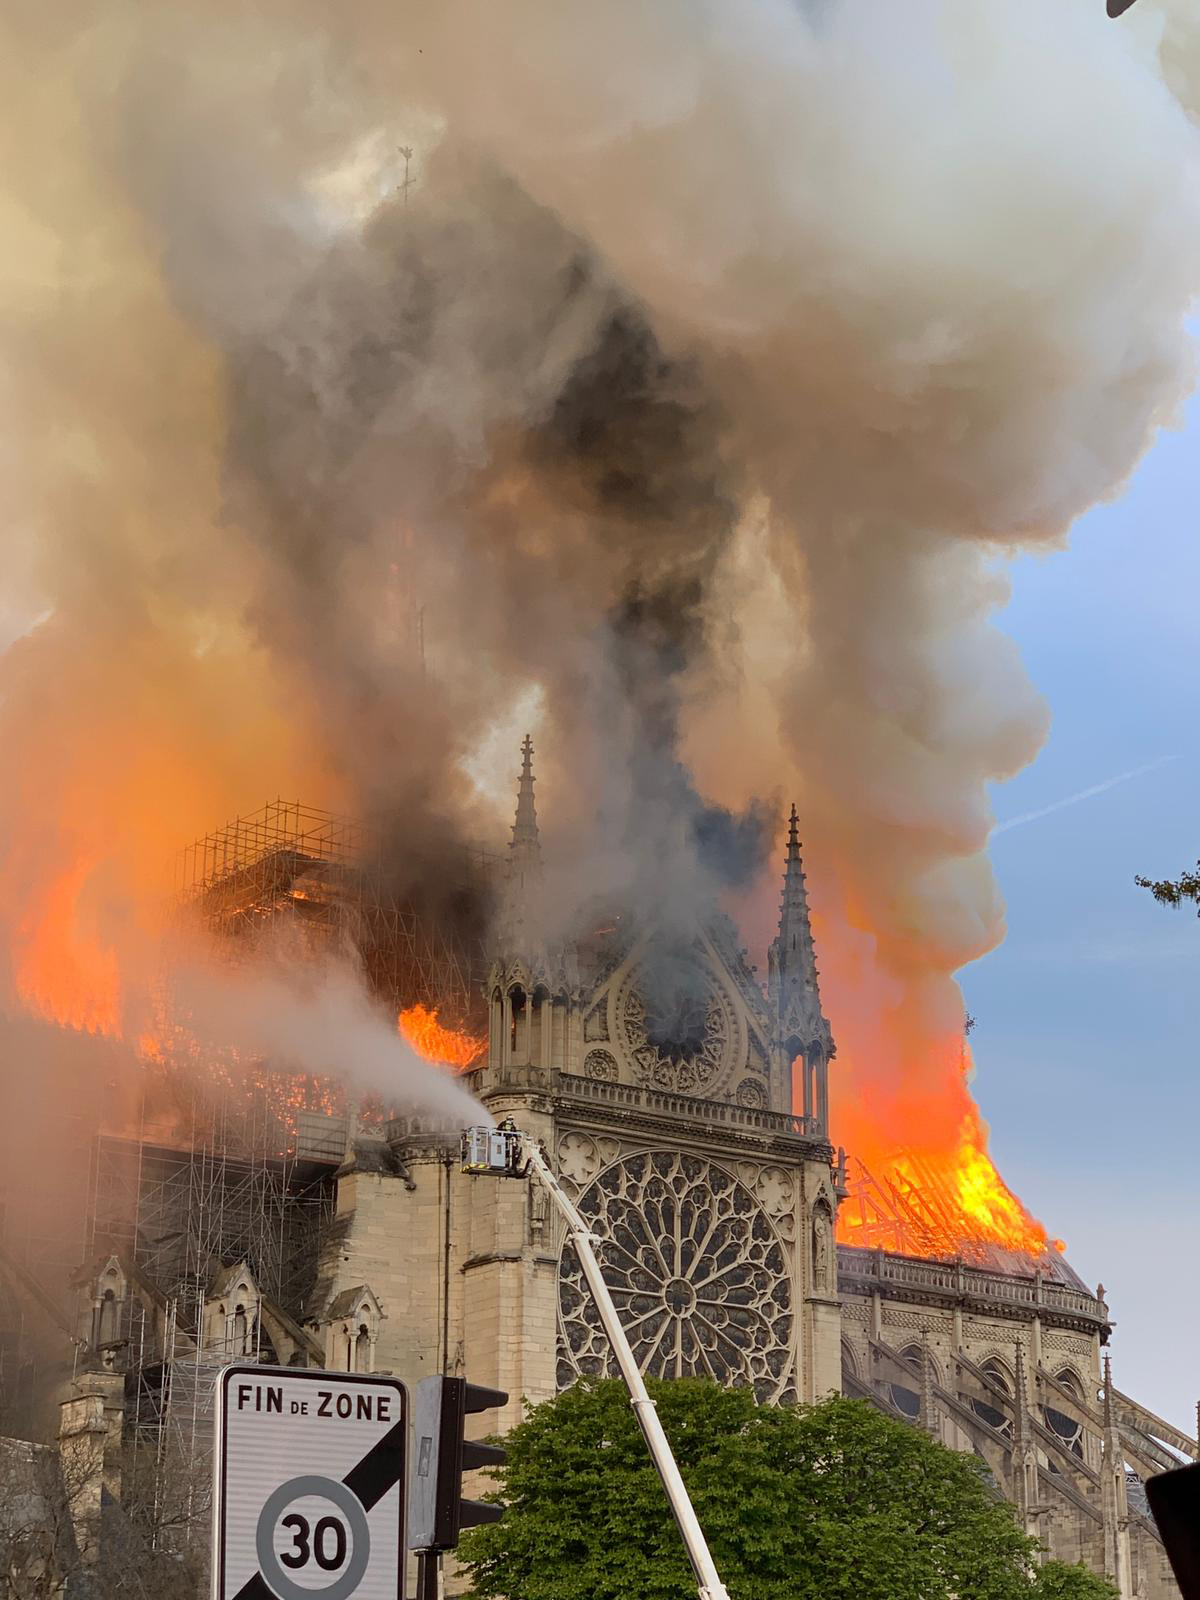 Flames and smoke are seen billowing from the roof at Notre-Dame Cathedral in Paris on April 15, 2019. - A fire broke out at the landmark Notre-Dame Cathedral in central Paris, potentially involving renovation works being carried out at the site, the fire service said.Images posted on social media showed flames and huge clouds of smoke billowing above the roof of the gothic cathedral, the most visited historic monument in Europe. (Photo by Patrick ANIDJAR / AFP)